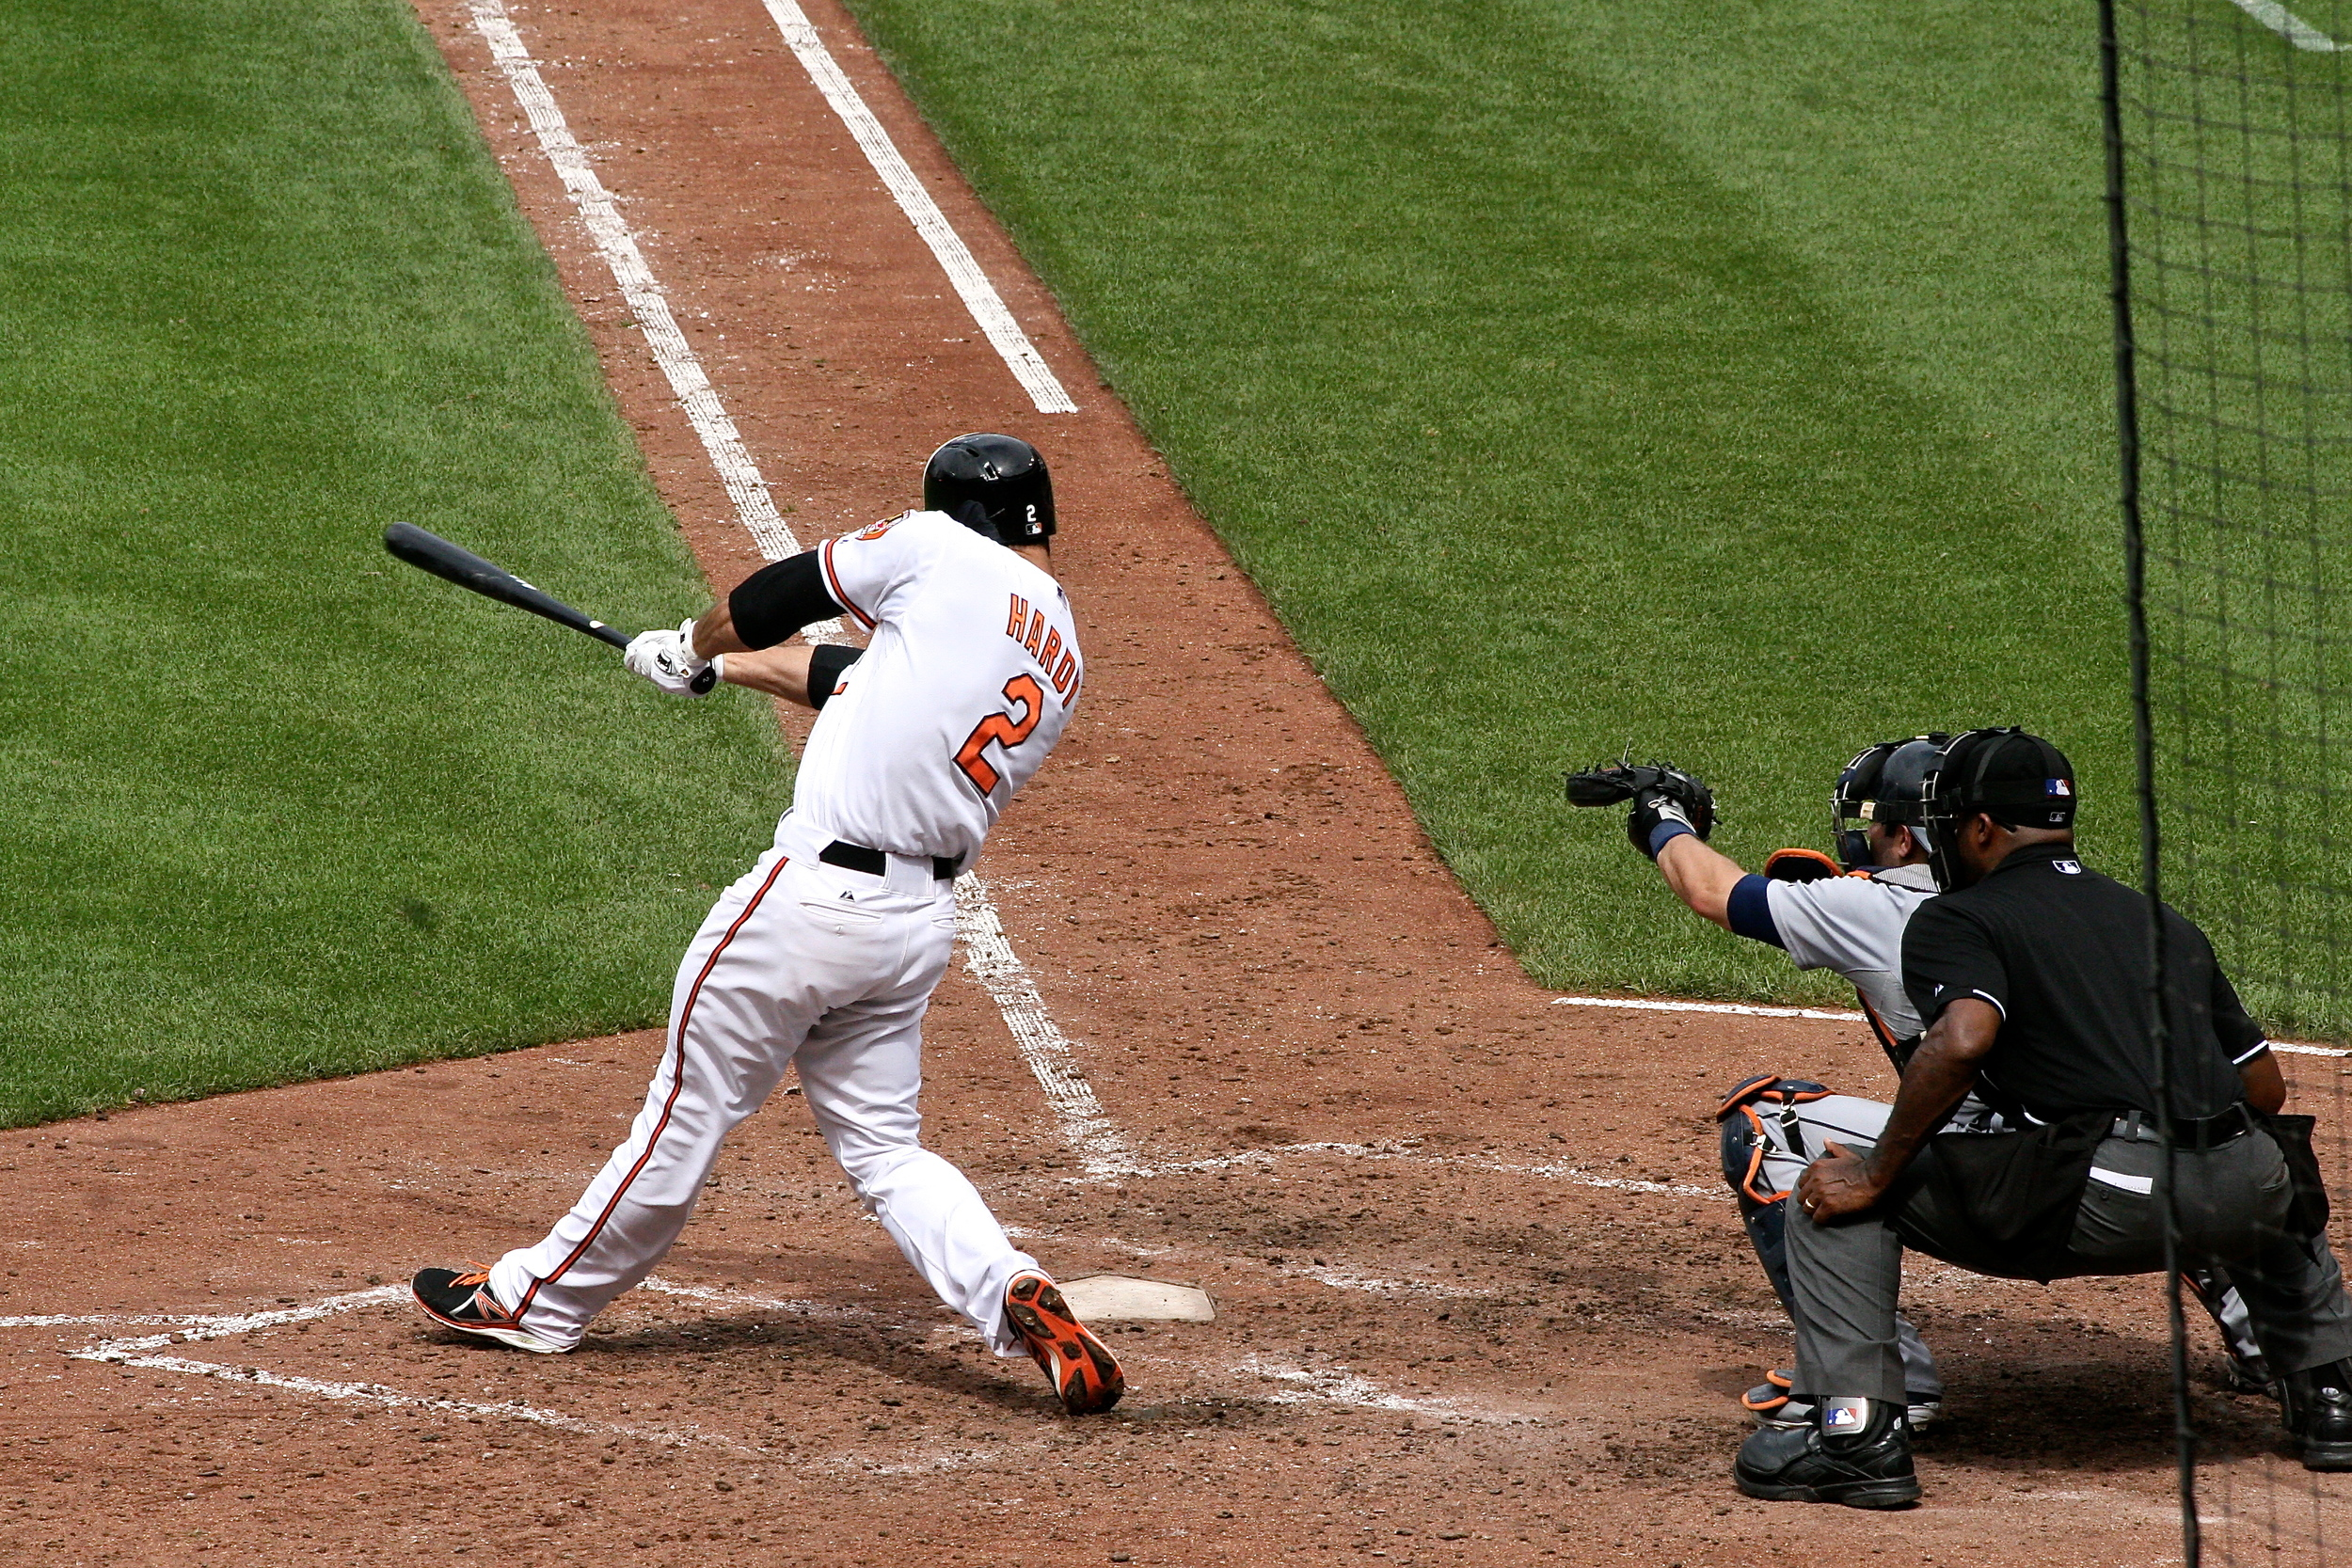 J.J. Hardy continues the O's 7th inning rally